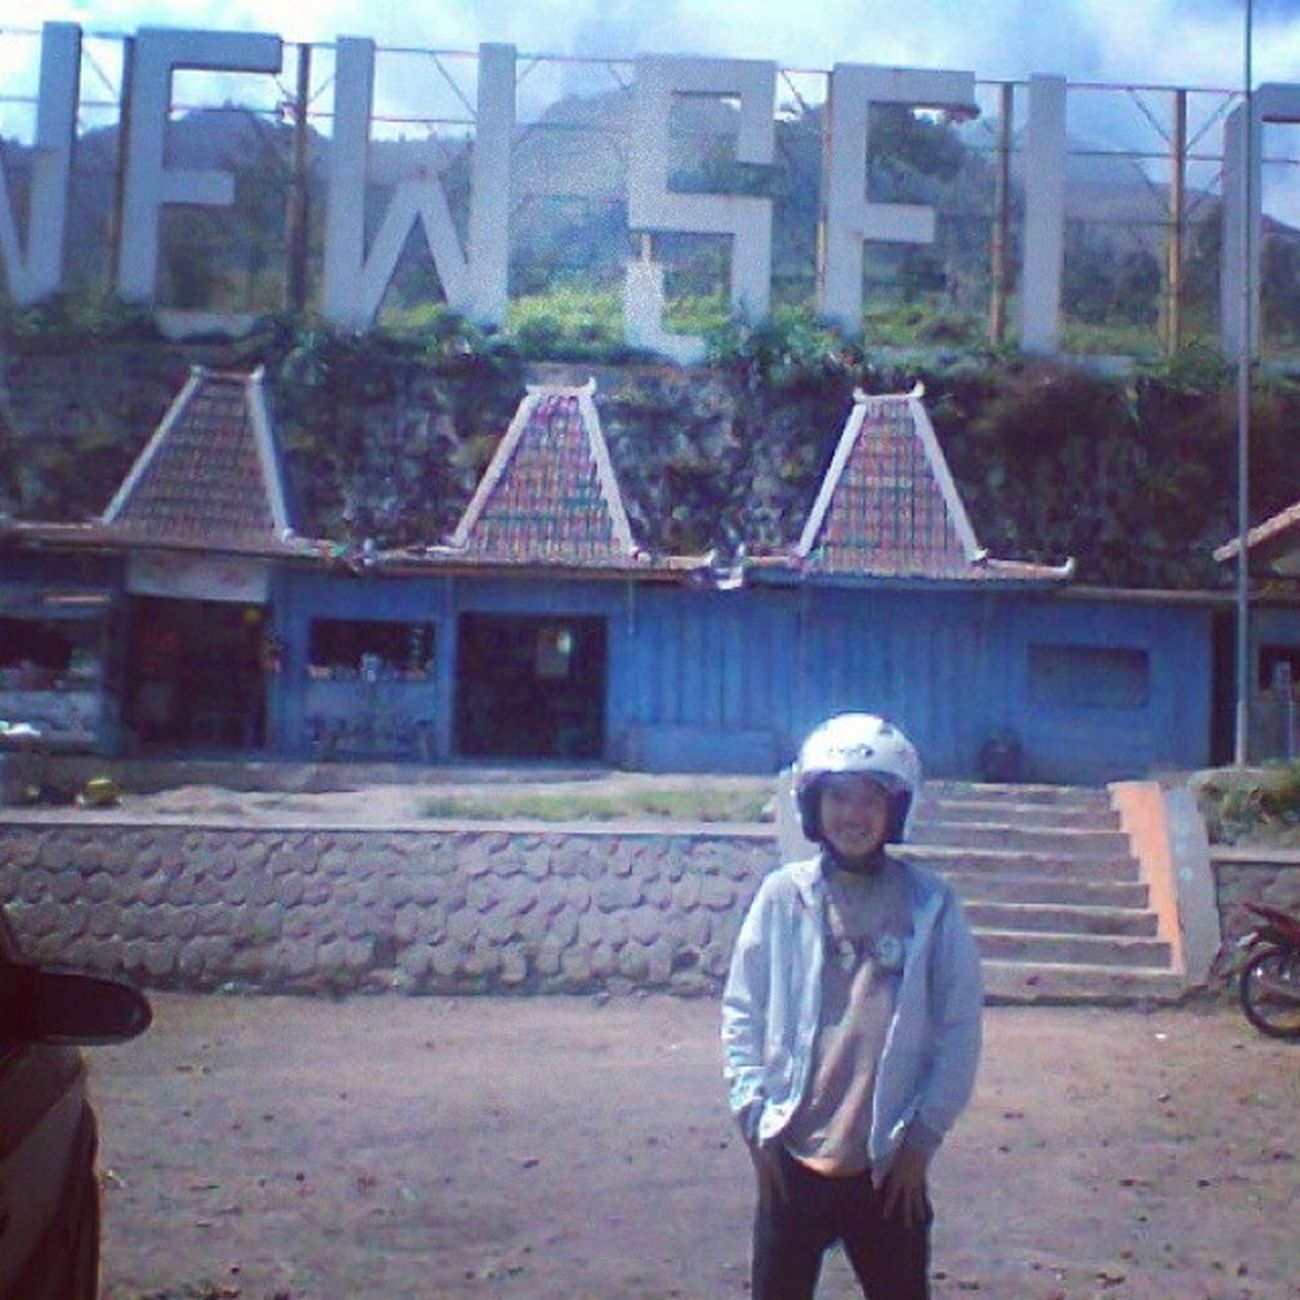 New Selo Boyolali Merapi Lereng Holiday Fun love that place